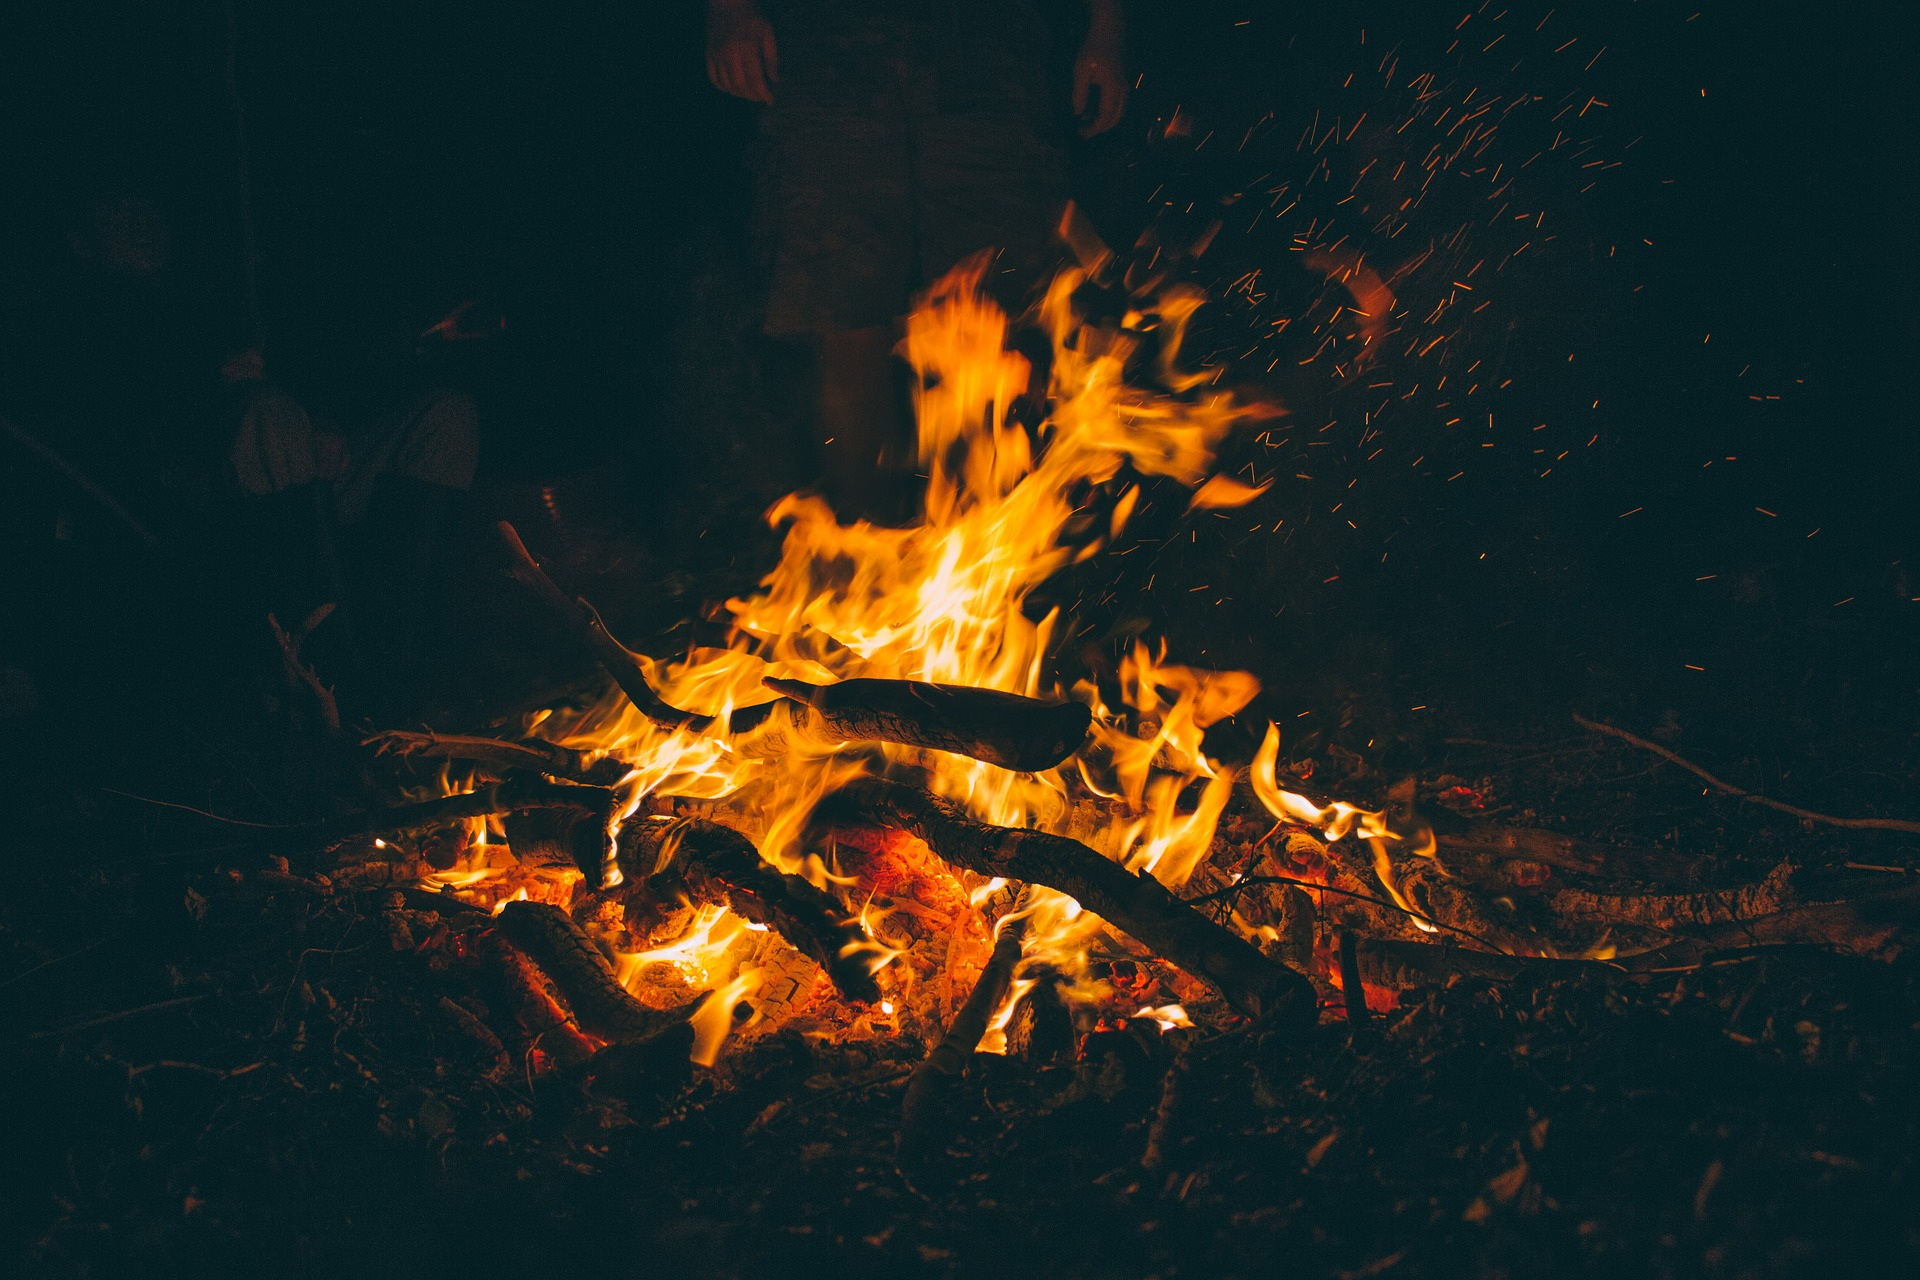 Picture of a bonfire